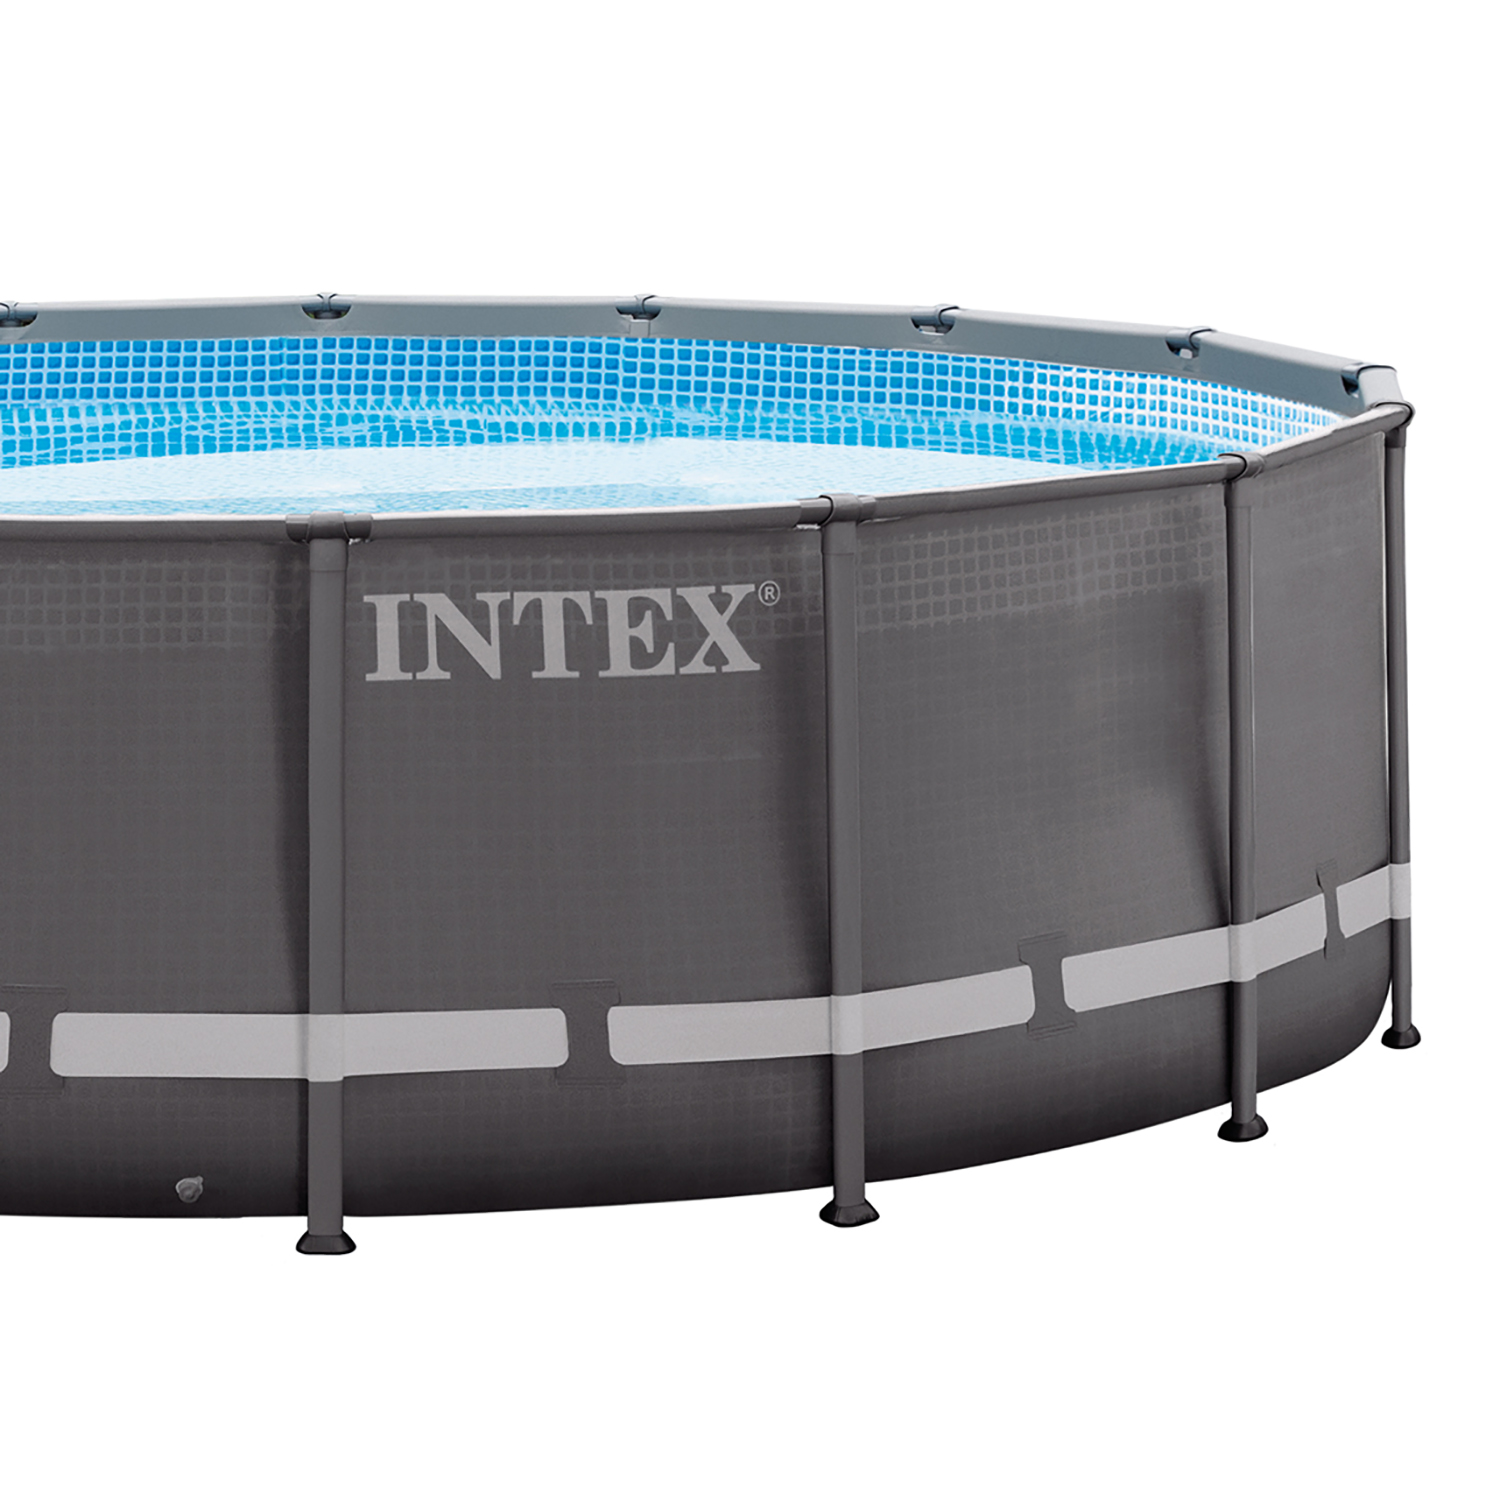 Intex 16 39 x 48 ultra frame swimming pool set w 1200 gph for Hagebau intex pool